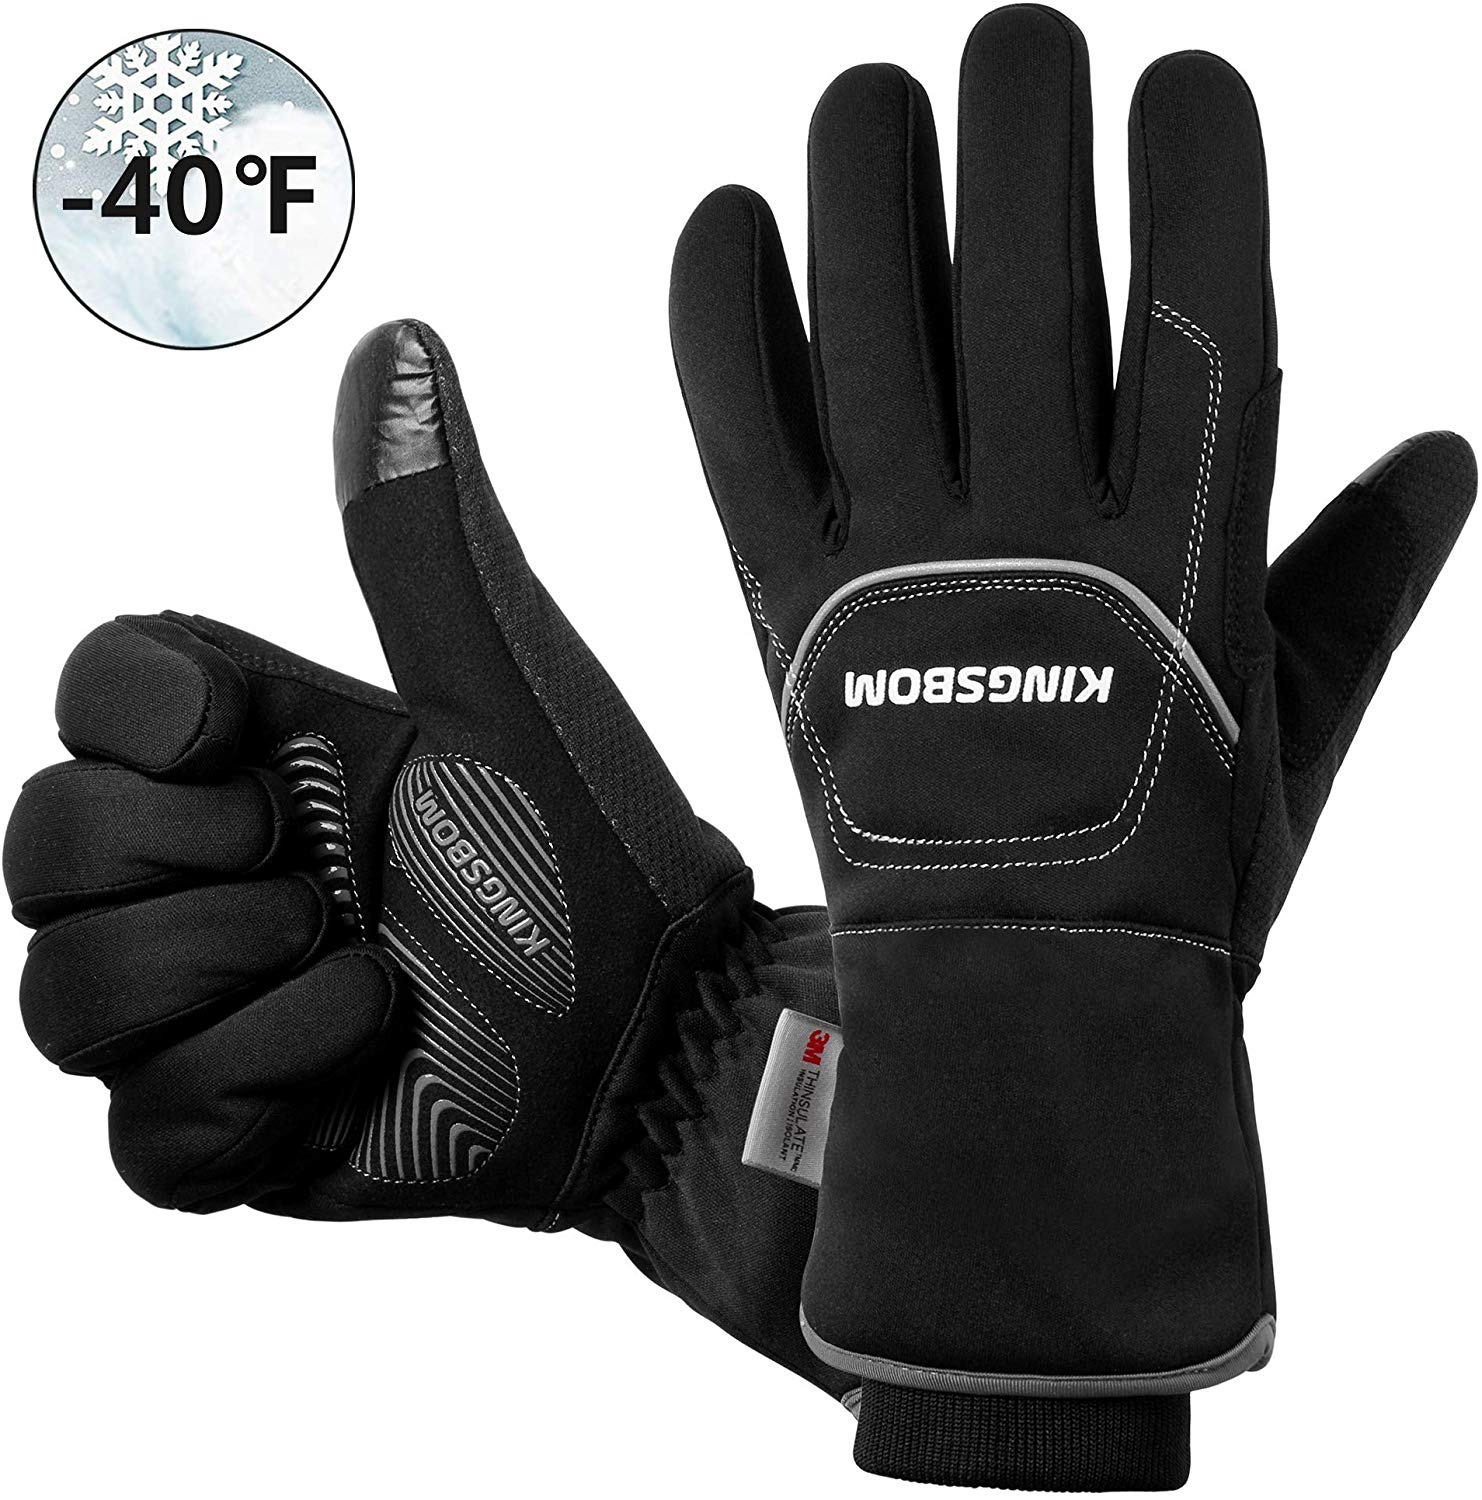 KINGSBOM Waterproof & Windproof Thermal Gloves - 3M Thinsulate Winter Touch Screen Warm Gloves